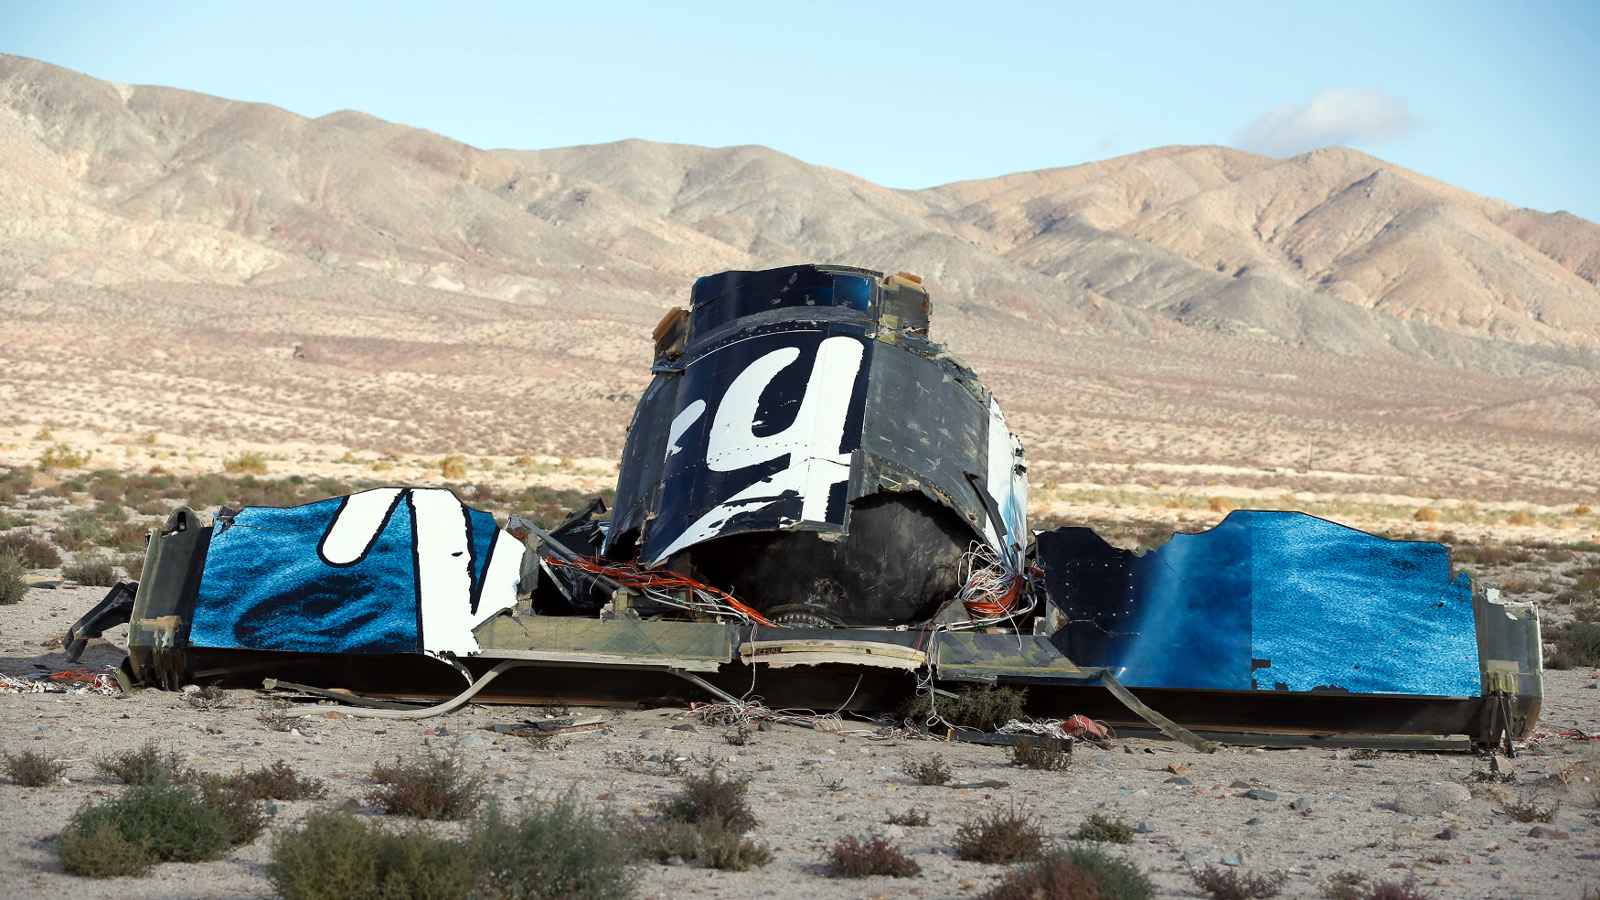 A piece of debris is seen near the crash site of Virgin Galactic's SpaceShipTwo near Cantil, California November 1, 2014. Virgin Galactic founder Richard Branson said on Saturday he was working with U.S. authorities to determine what caused a passenger spaceship being developed by his space tourism company to crash in California, killing one pilot and injuring the other.